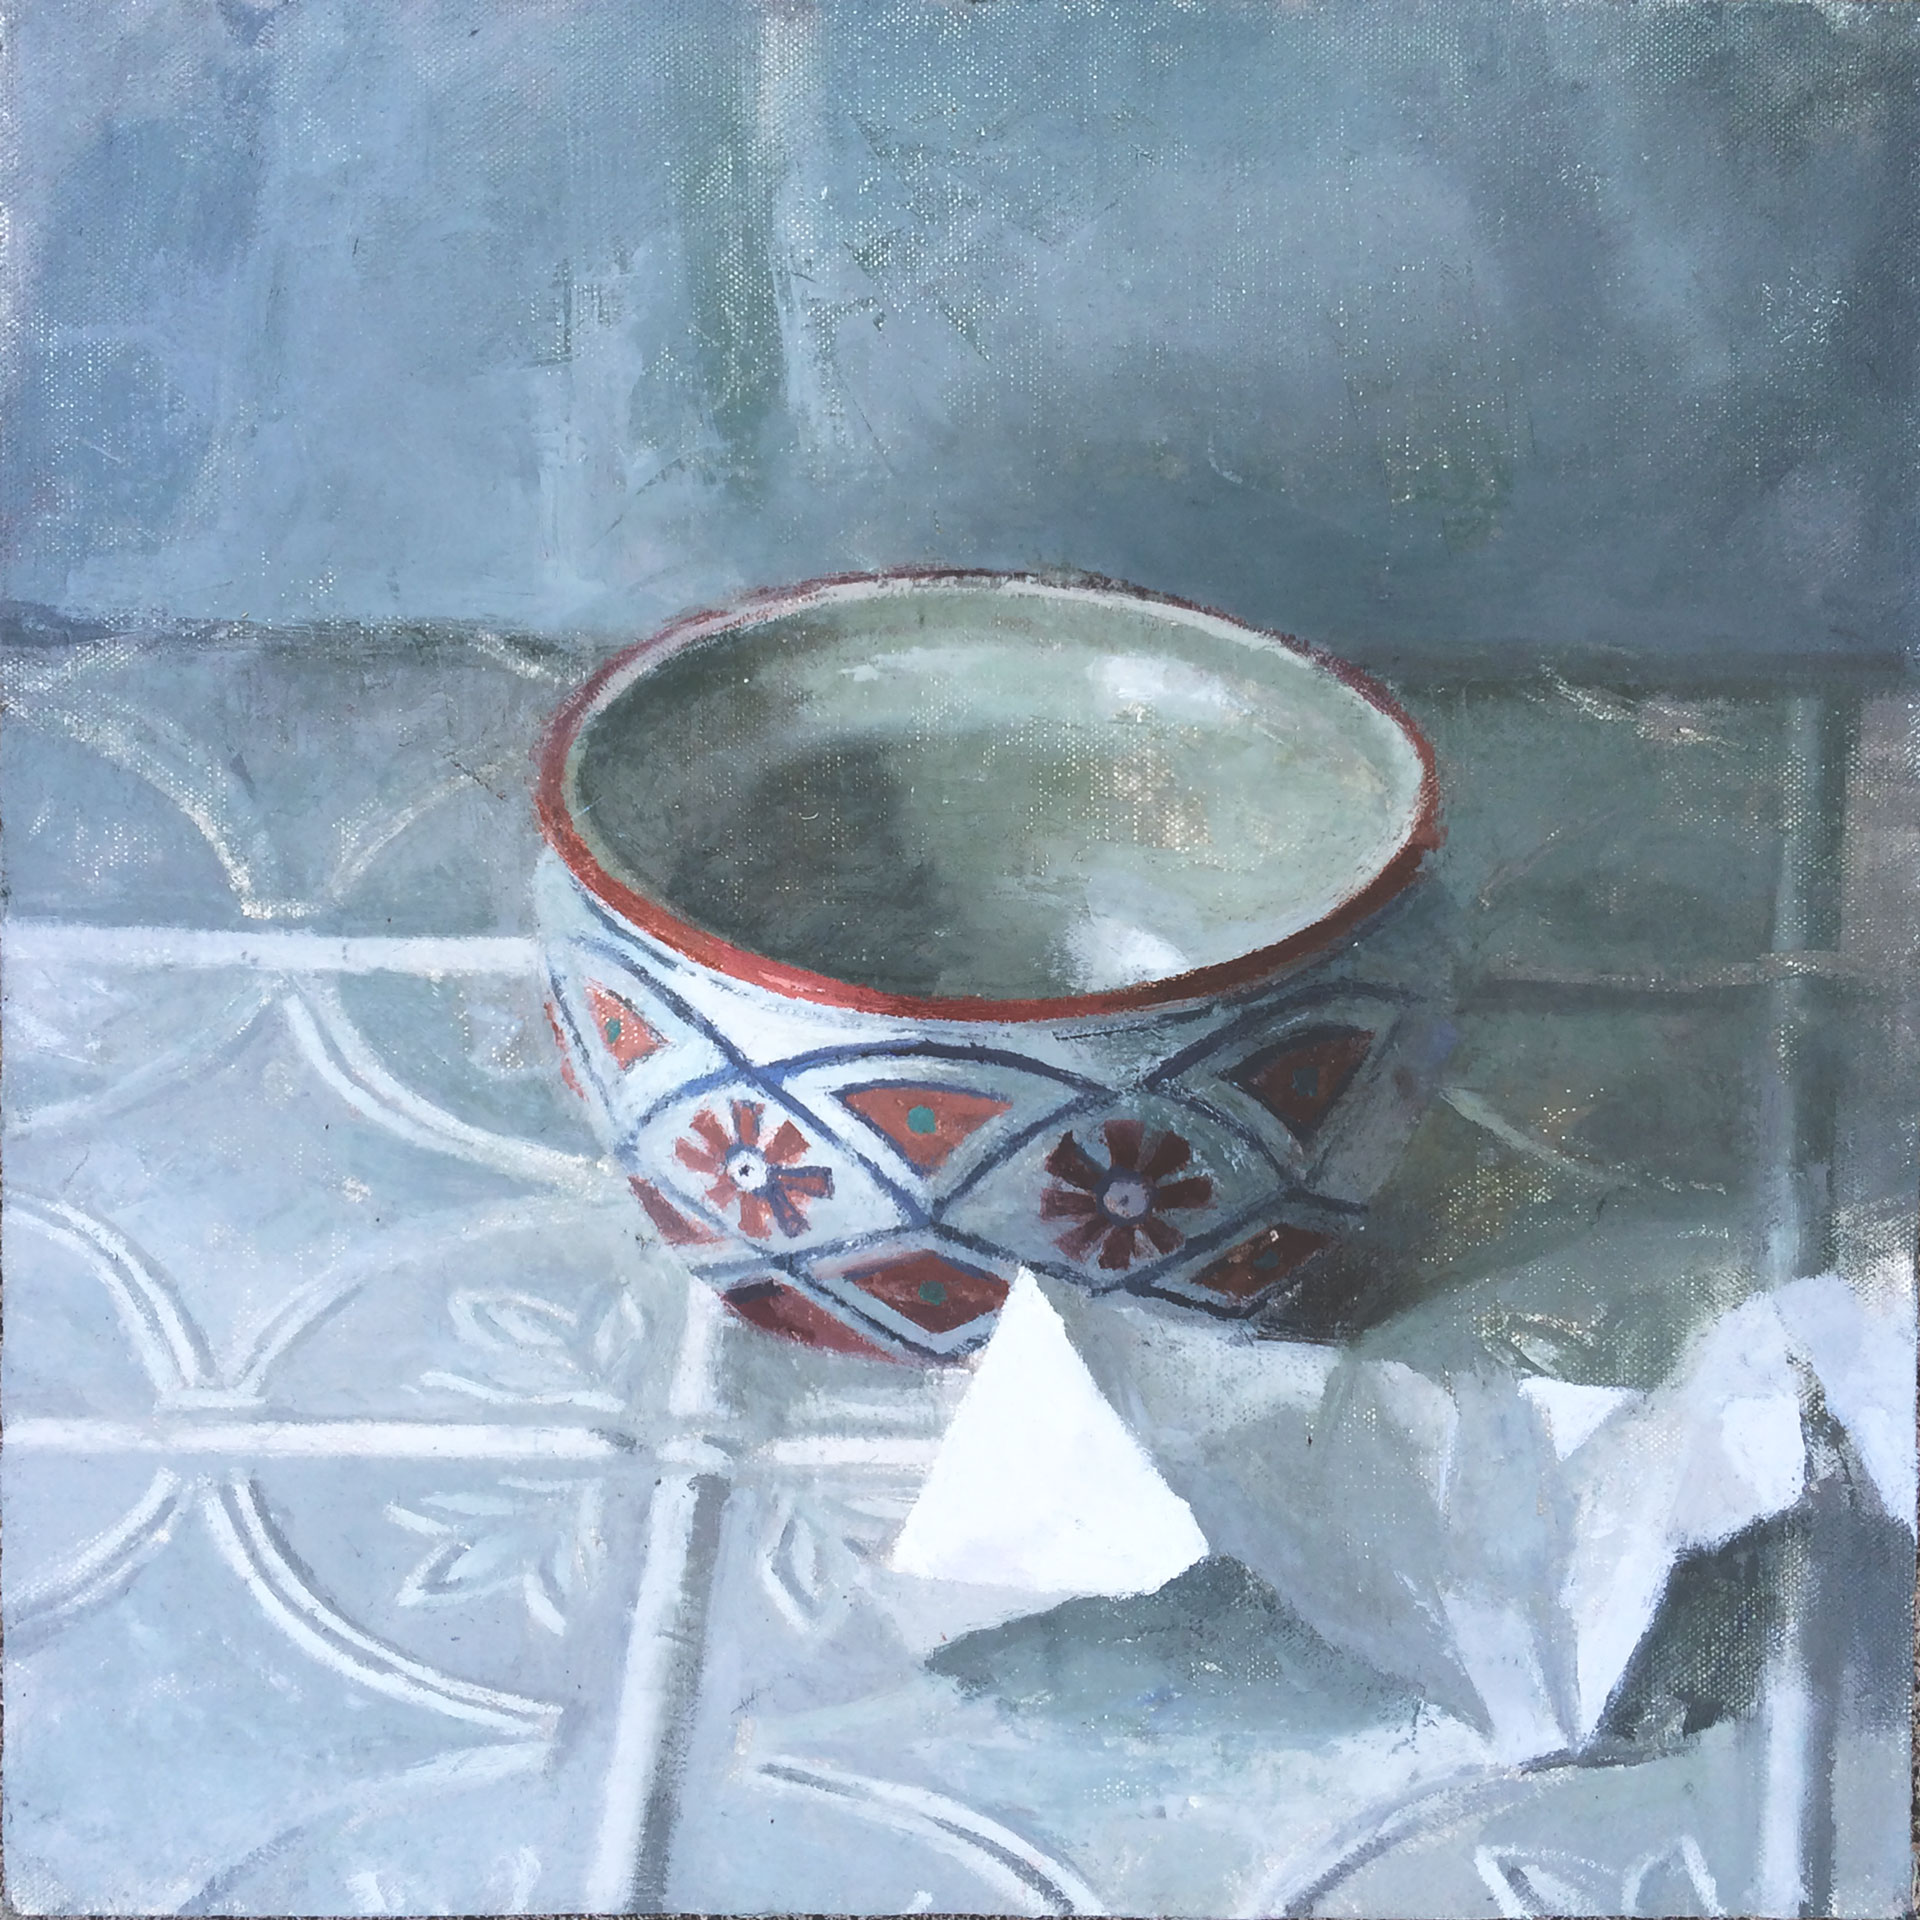 """Yolanda's Bowl"" 12"" x 12"" oil on canvas mounted on board"